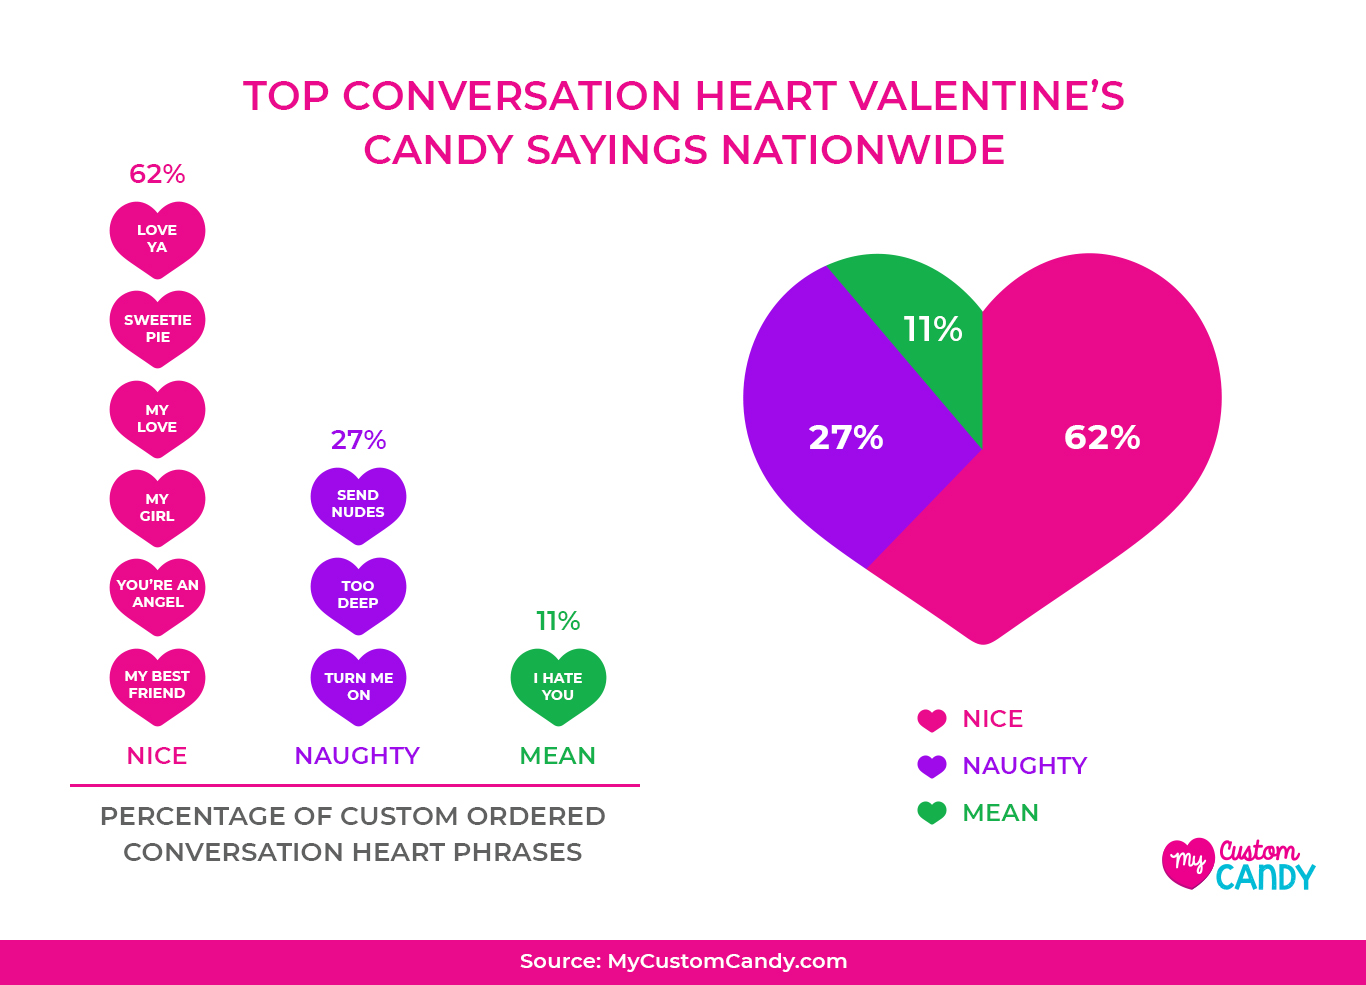 Top Candy Conversation Heart Phrases Nationwide